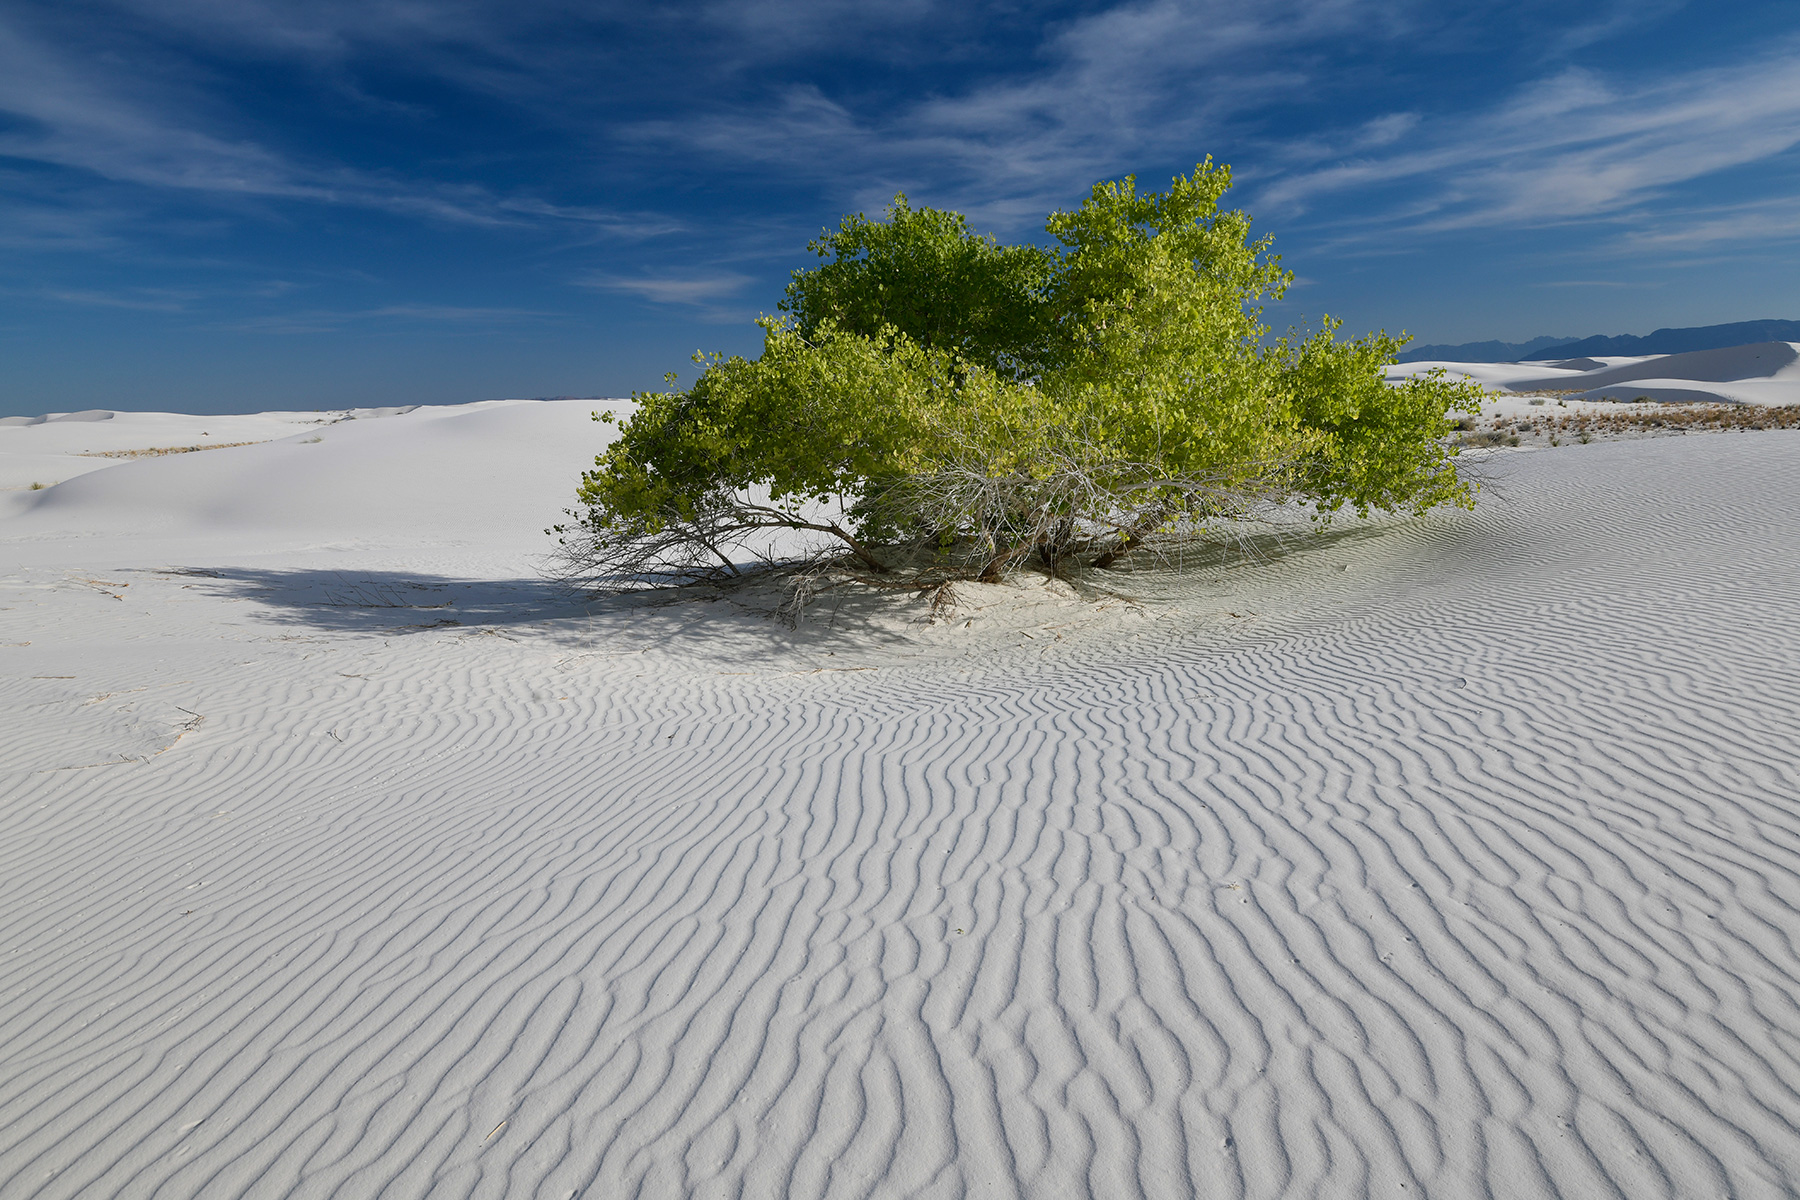 White Sands National Park (Nouveau Mexique, USA) -  Arbre  isolé au milieu des dunes de sable blanc de gypse